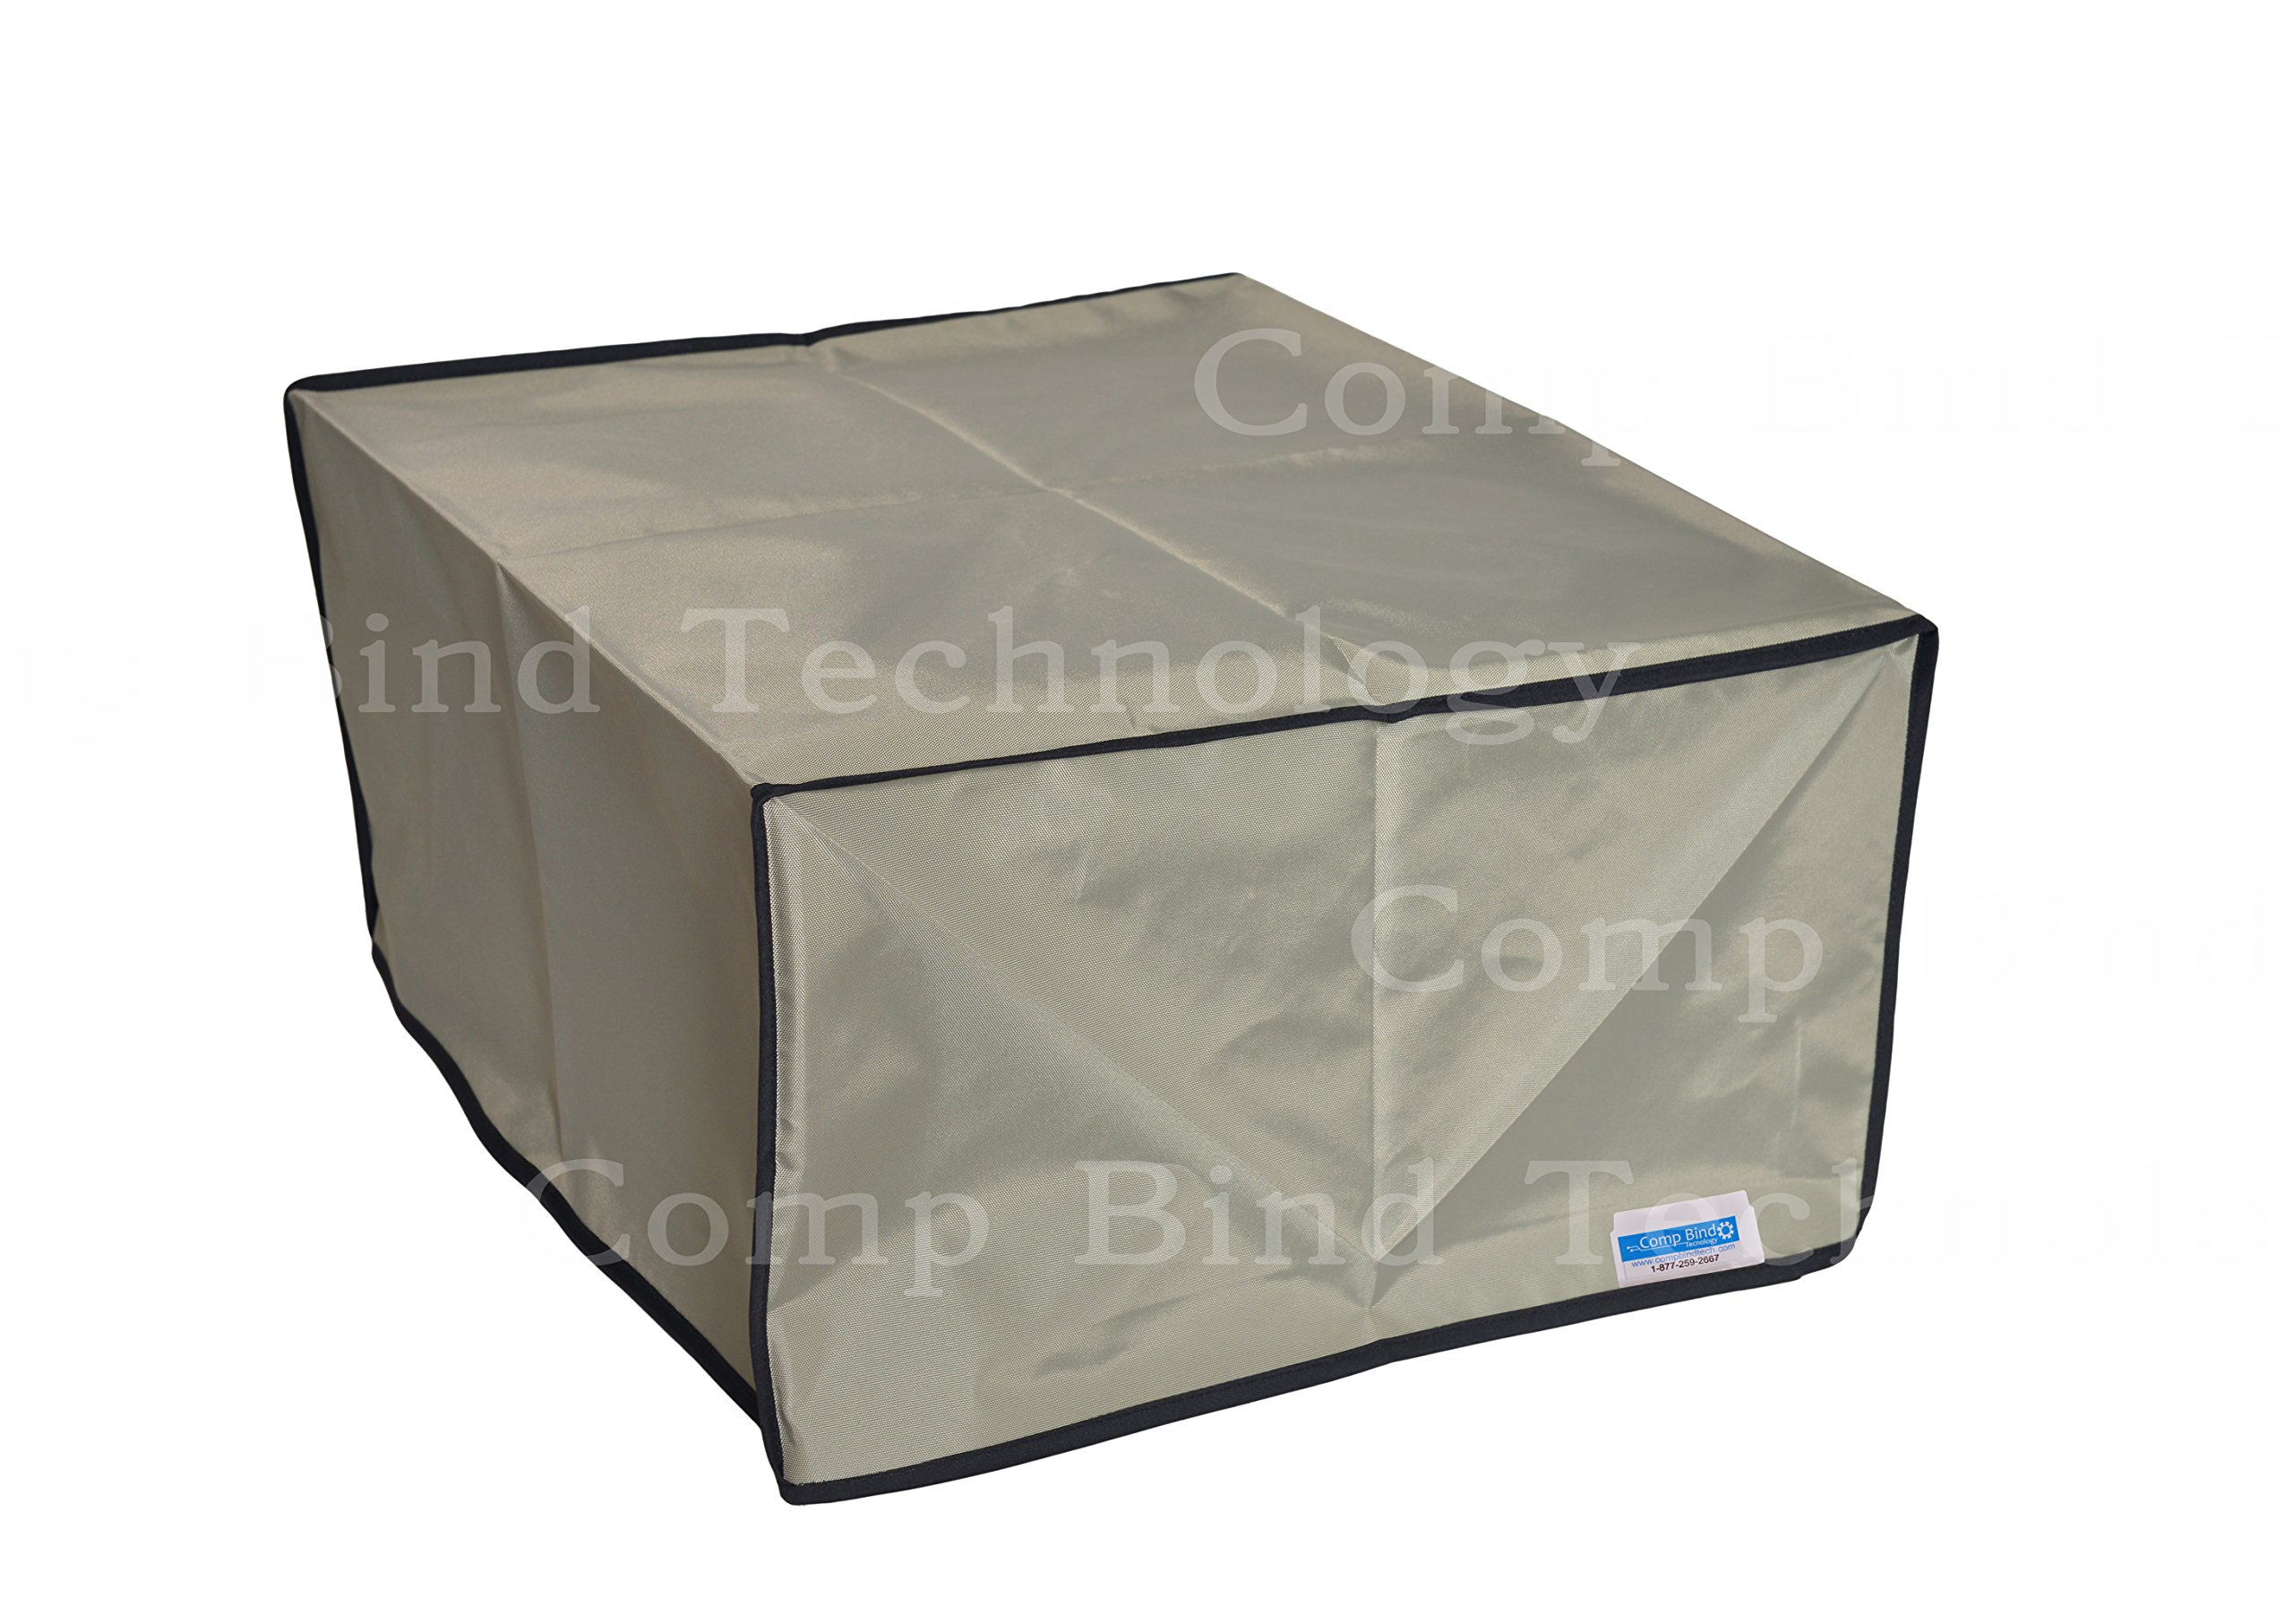 HP Latex 115 Inkjet Printer Silver Nylon Anti-Static Dust Cover 93''W x 33''D x 54'H by Comp Bind Technology